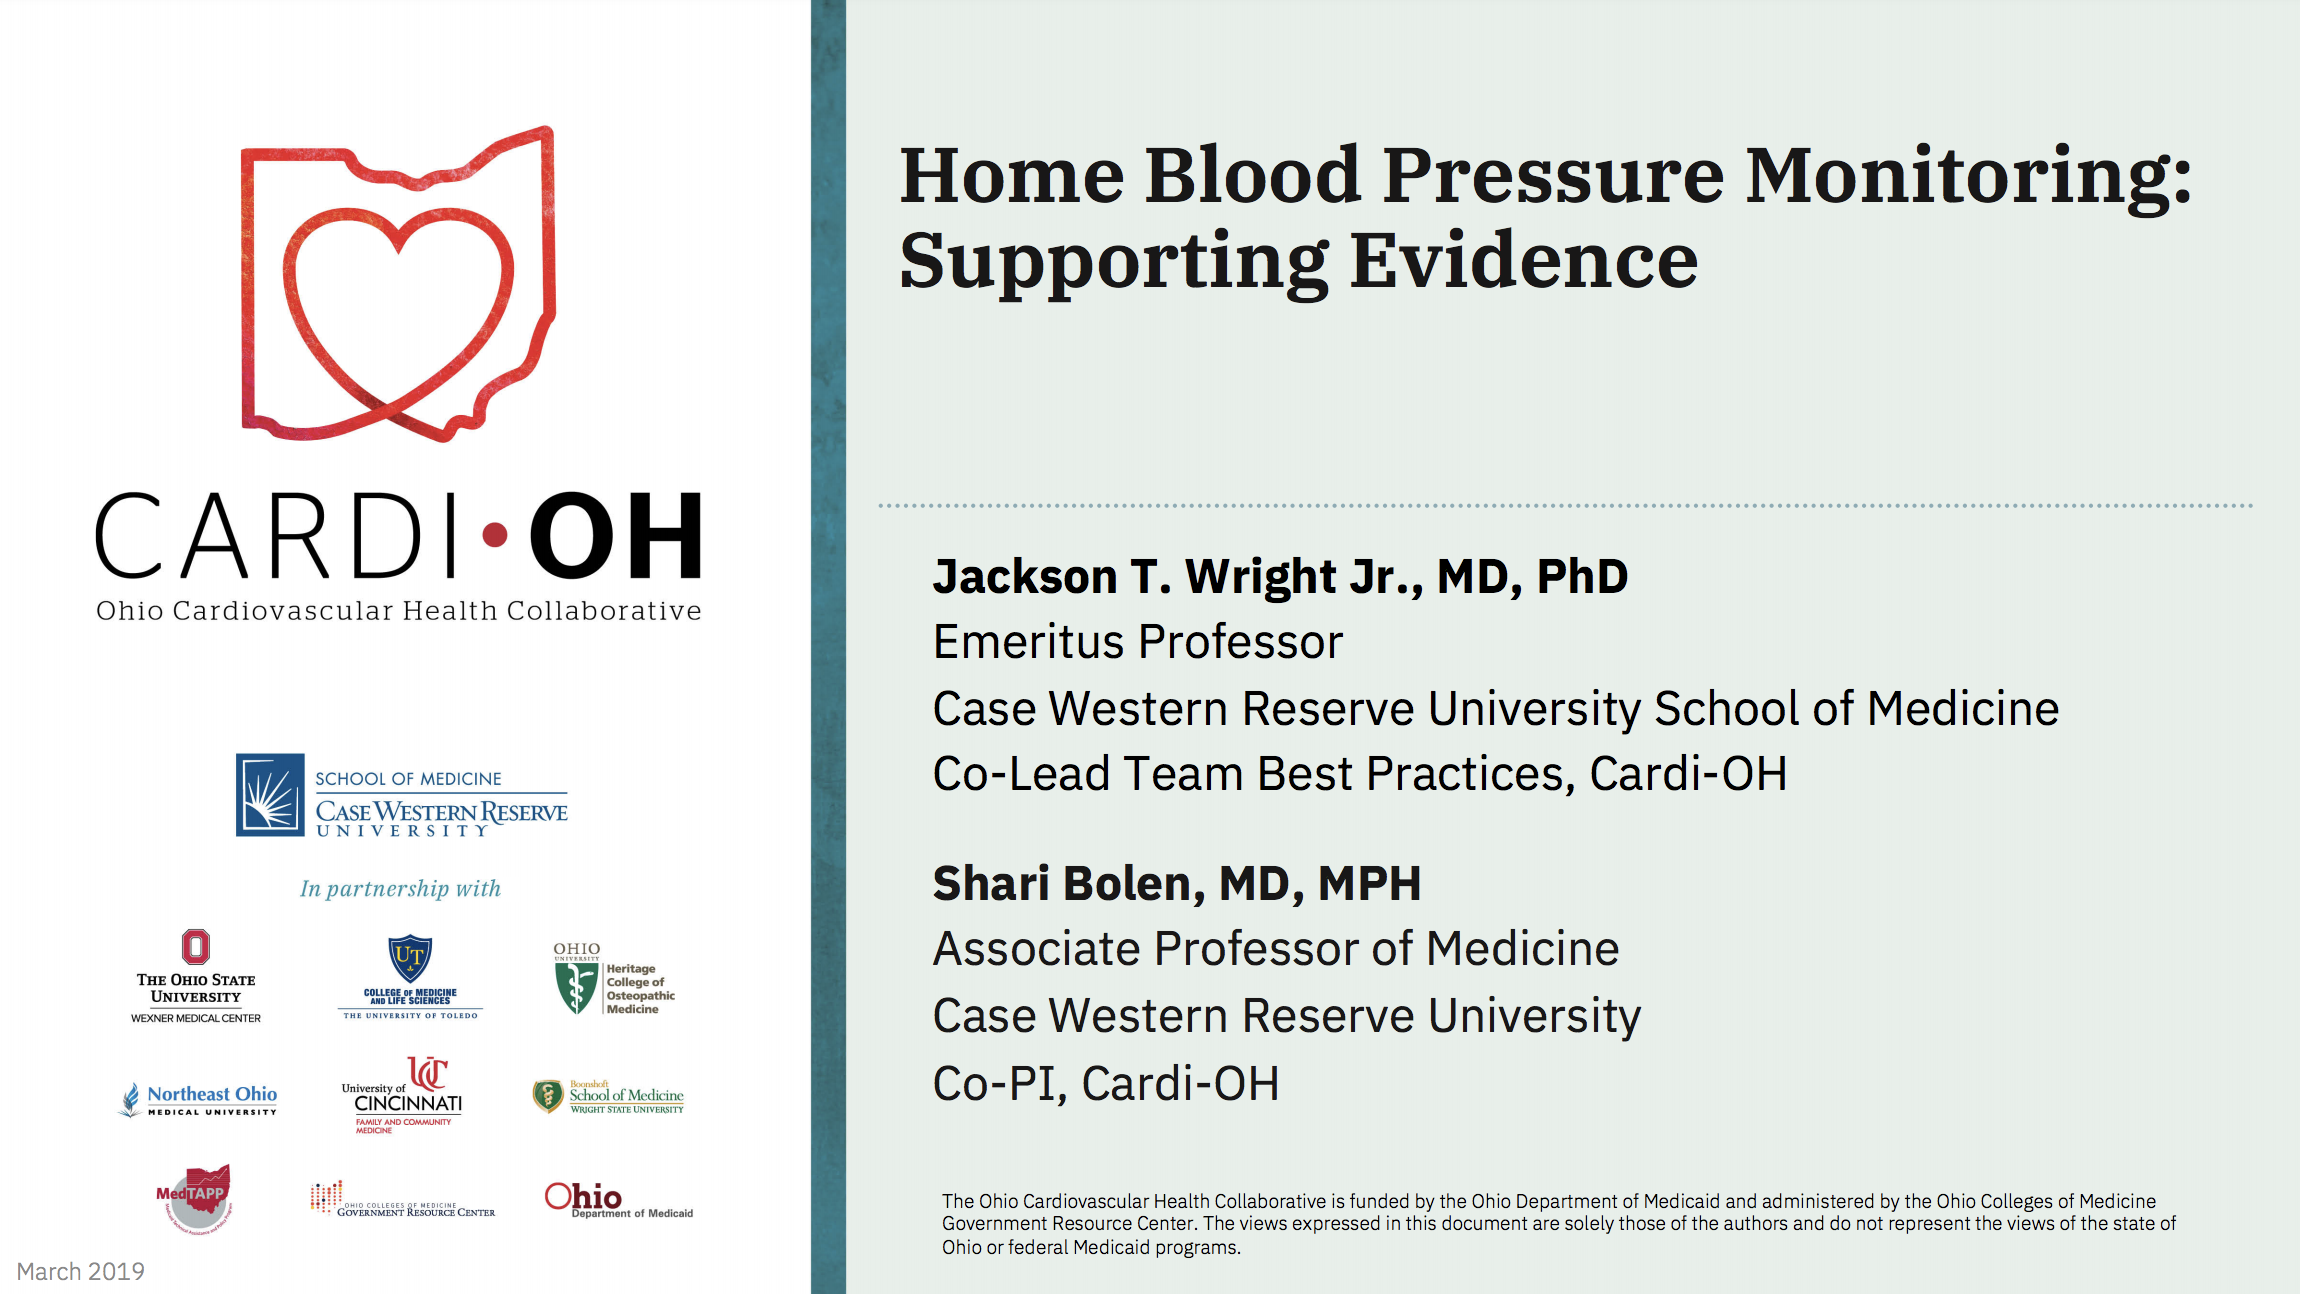 Evidence for Home Blood Pressure Measurement